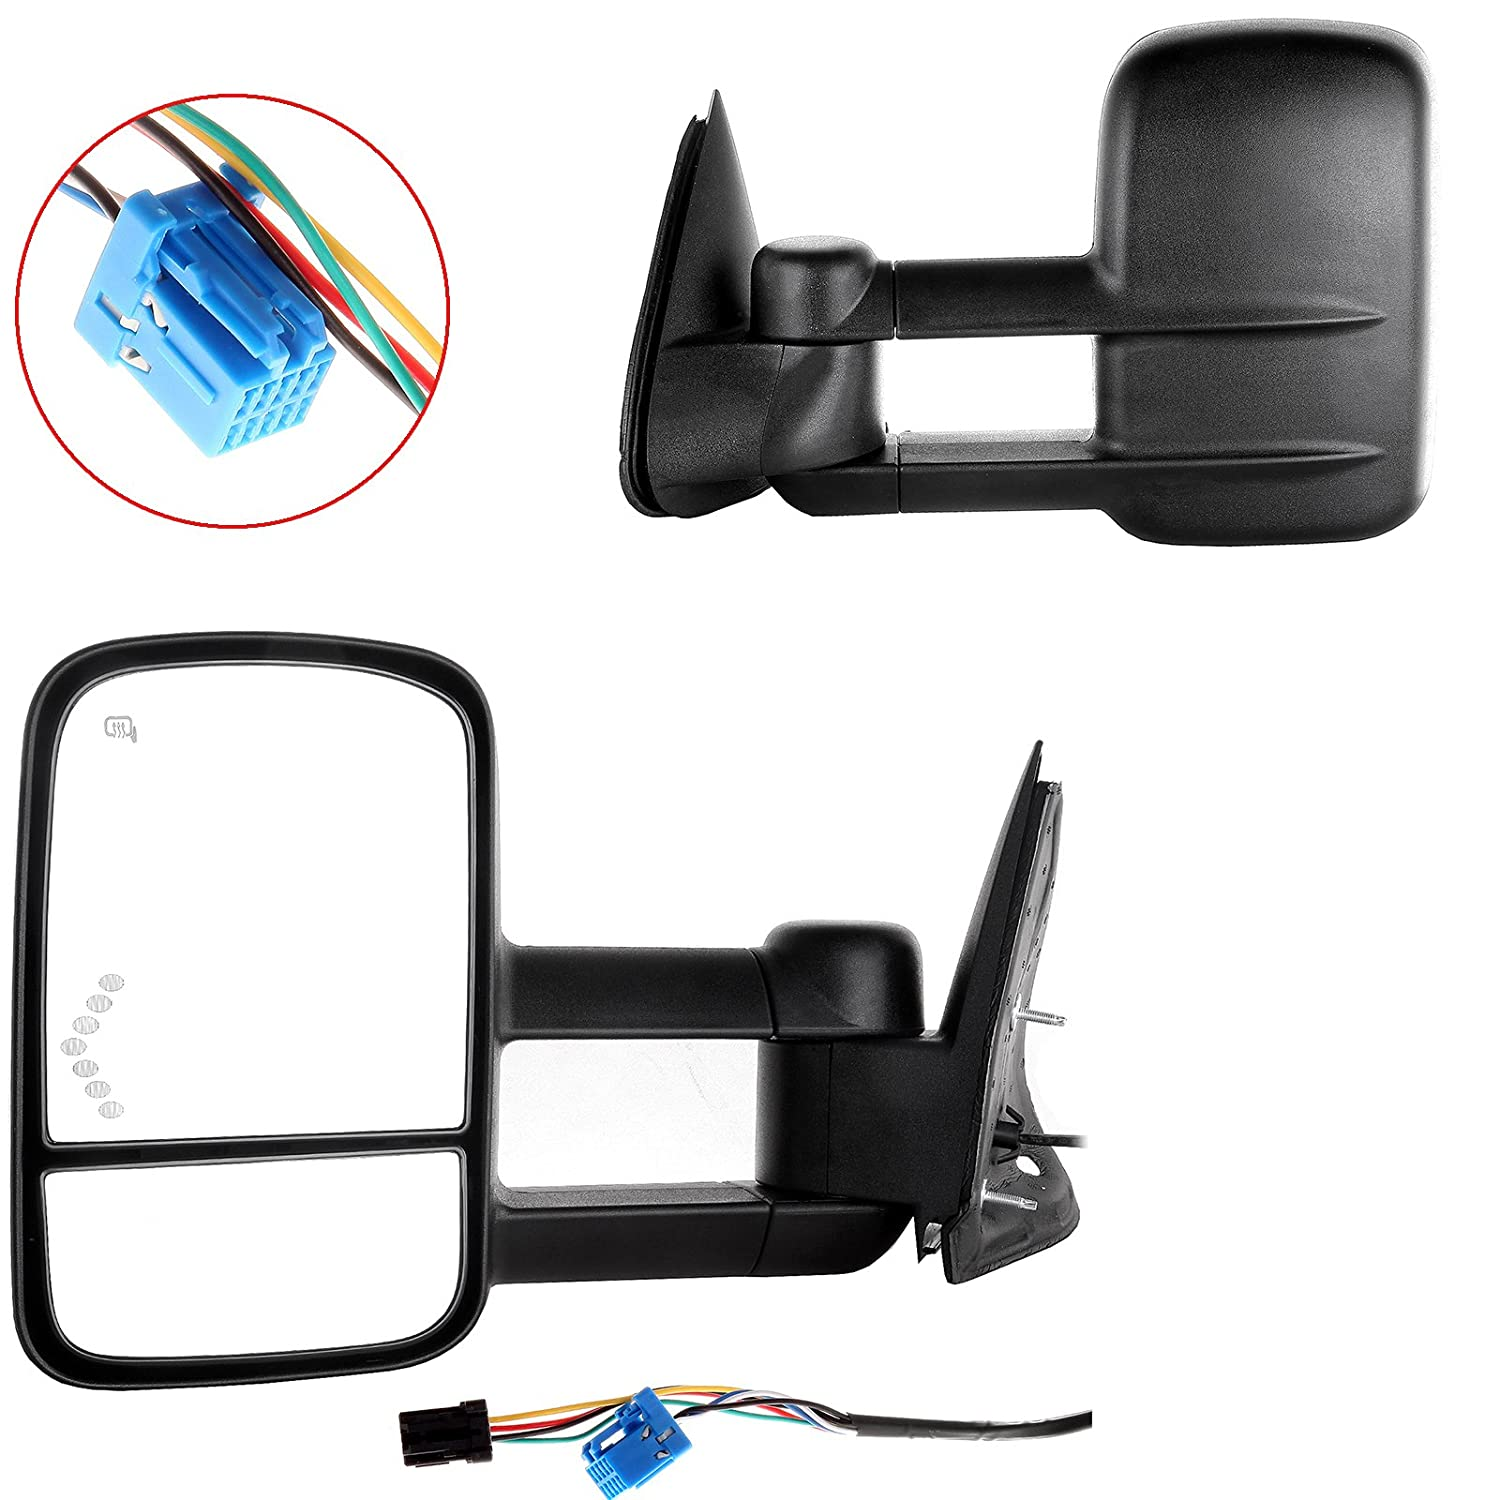 07 CLASSIC ECCPP Towing Mirror Replacement fit for 2003-2006 Chevrolet Silverado Tahoe Suburban Avalanche GMC Sierra Yukon Cadillac Escalade Power Heated LED Signal Clearance Light Pair Mirrors